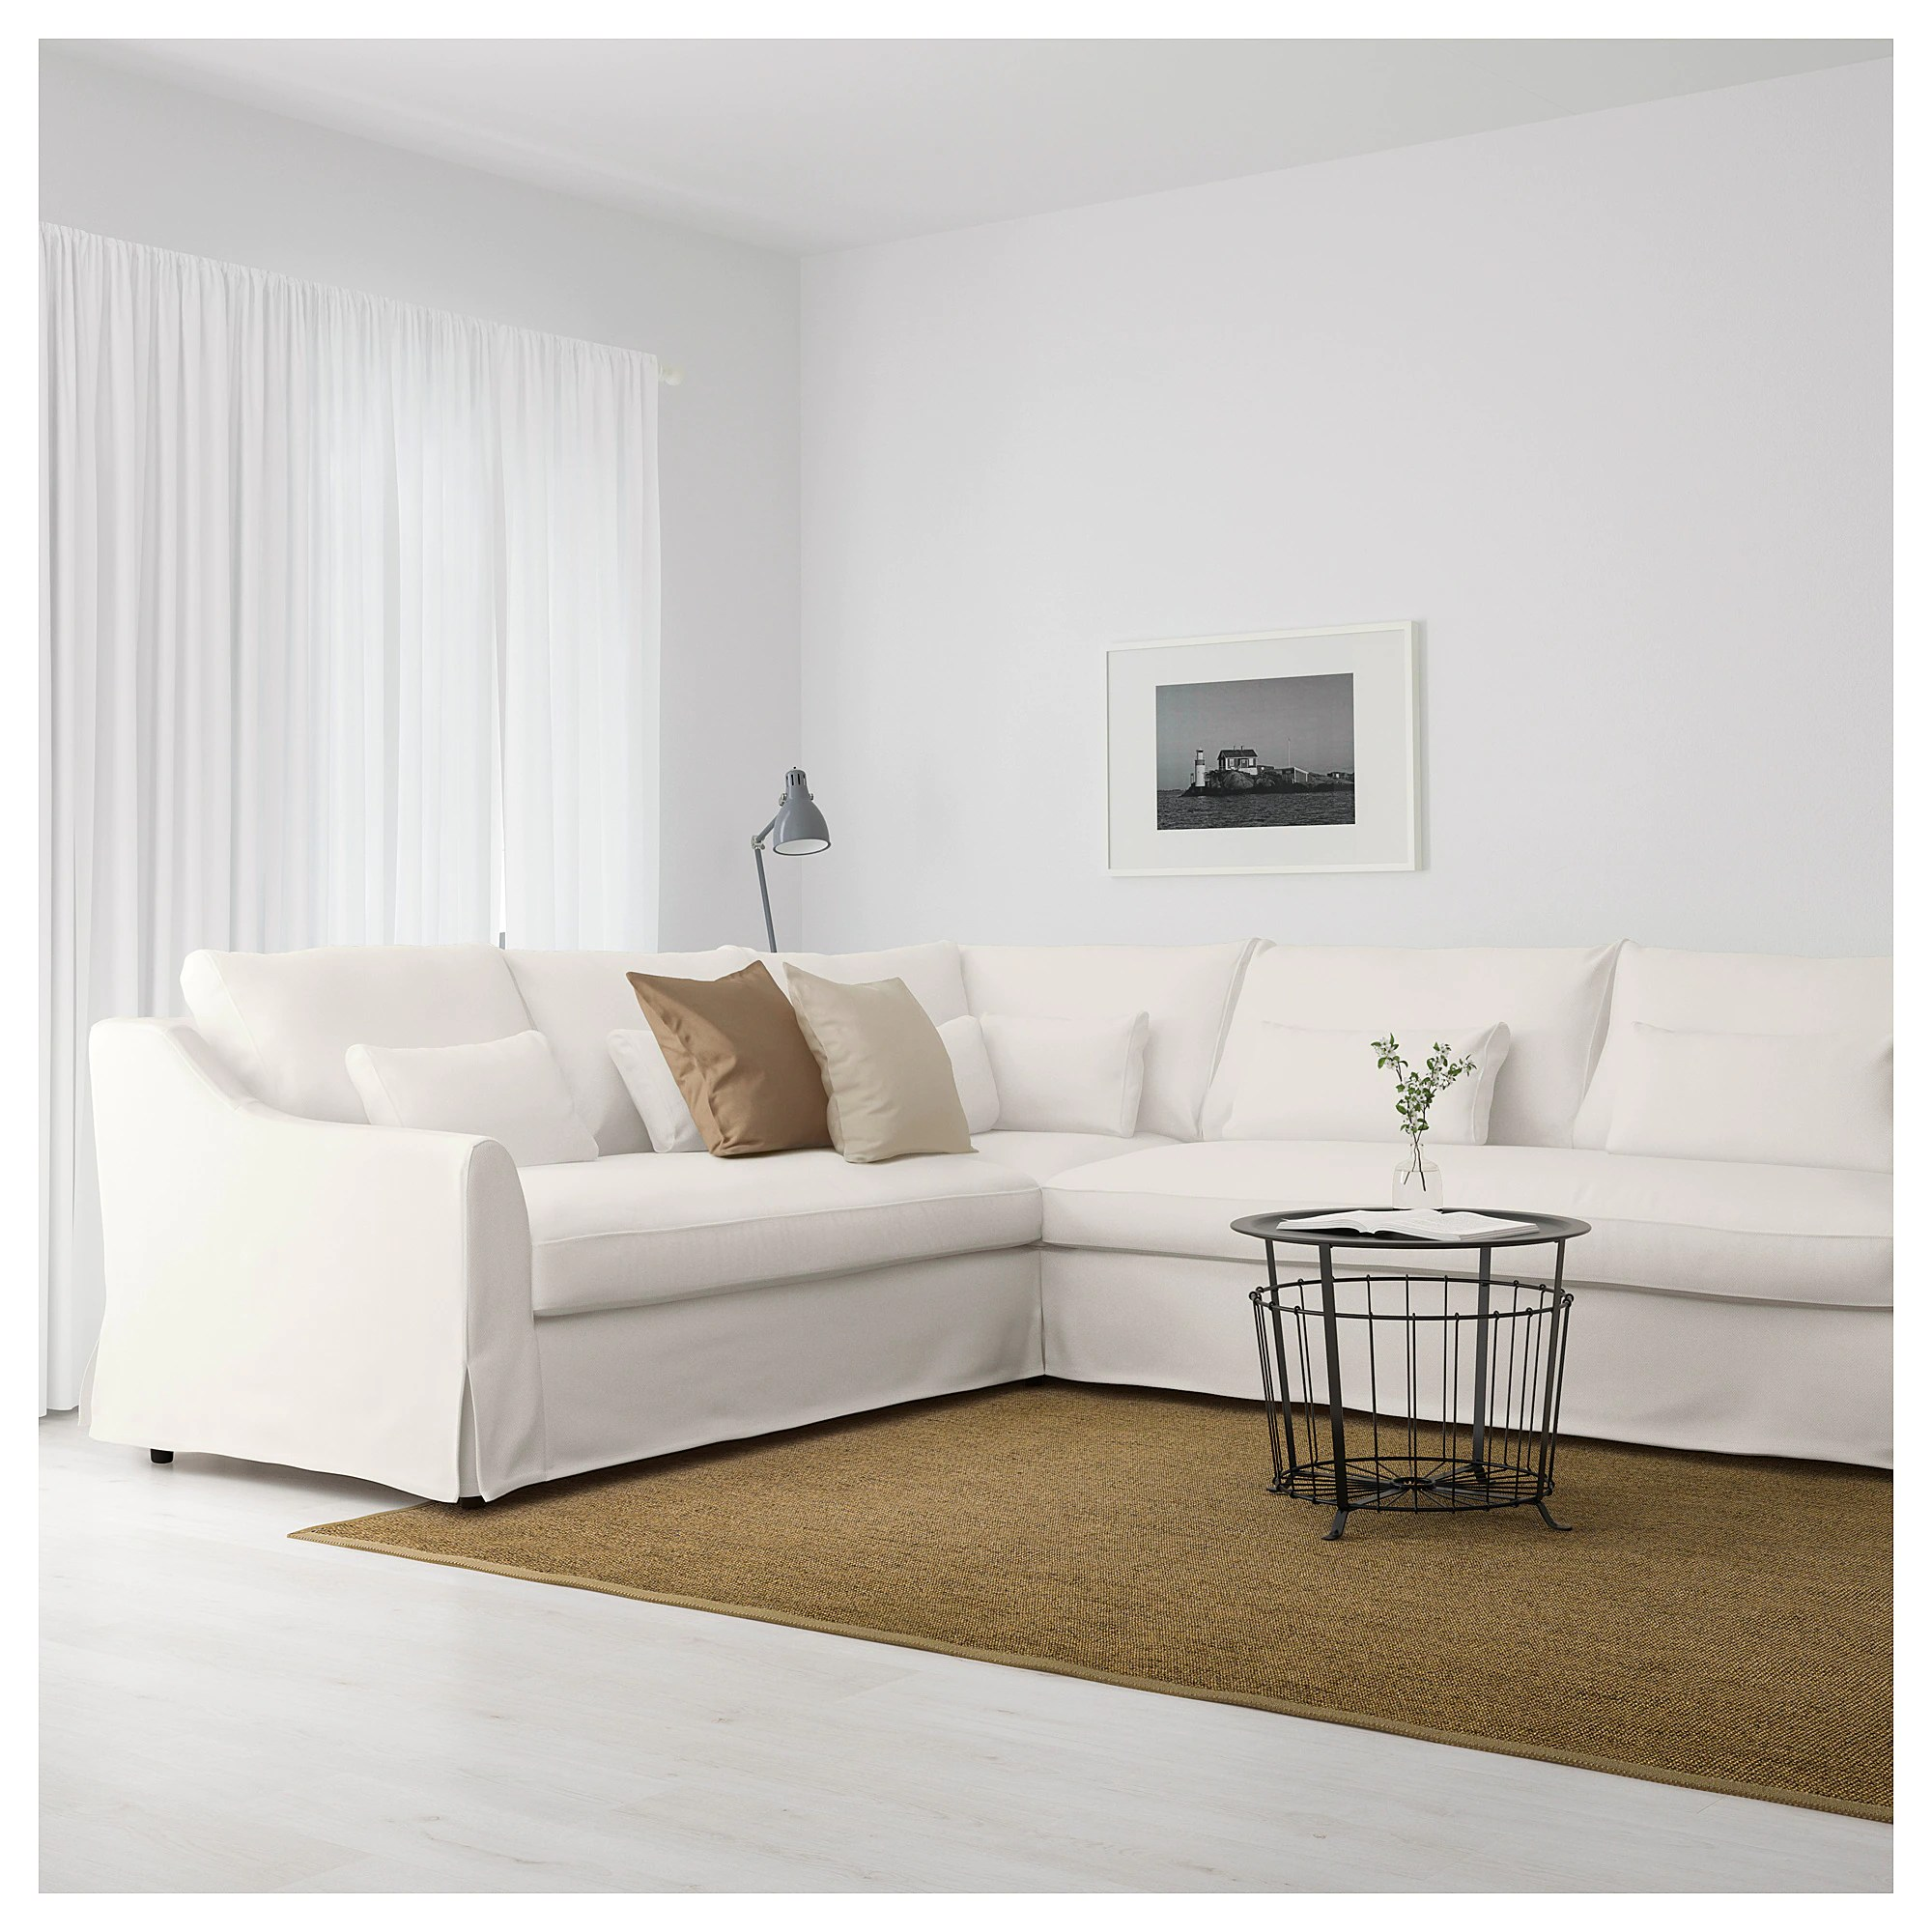 In recent months, advancements in robotics represent major changes in a rapidly improving industry. FÄRLÖV Sectional,5 seat/sofa right - Flodafors white - IKEA